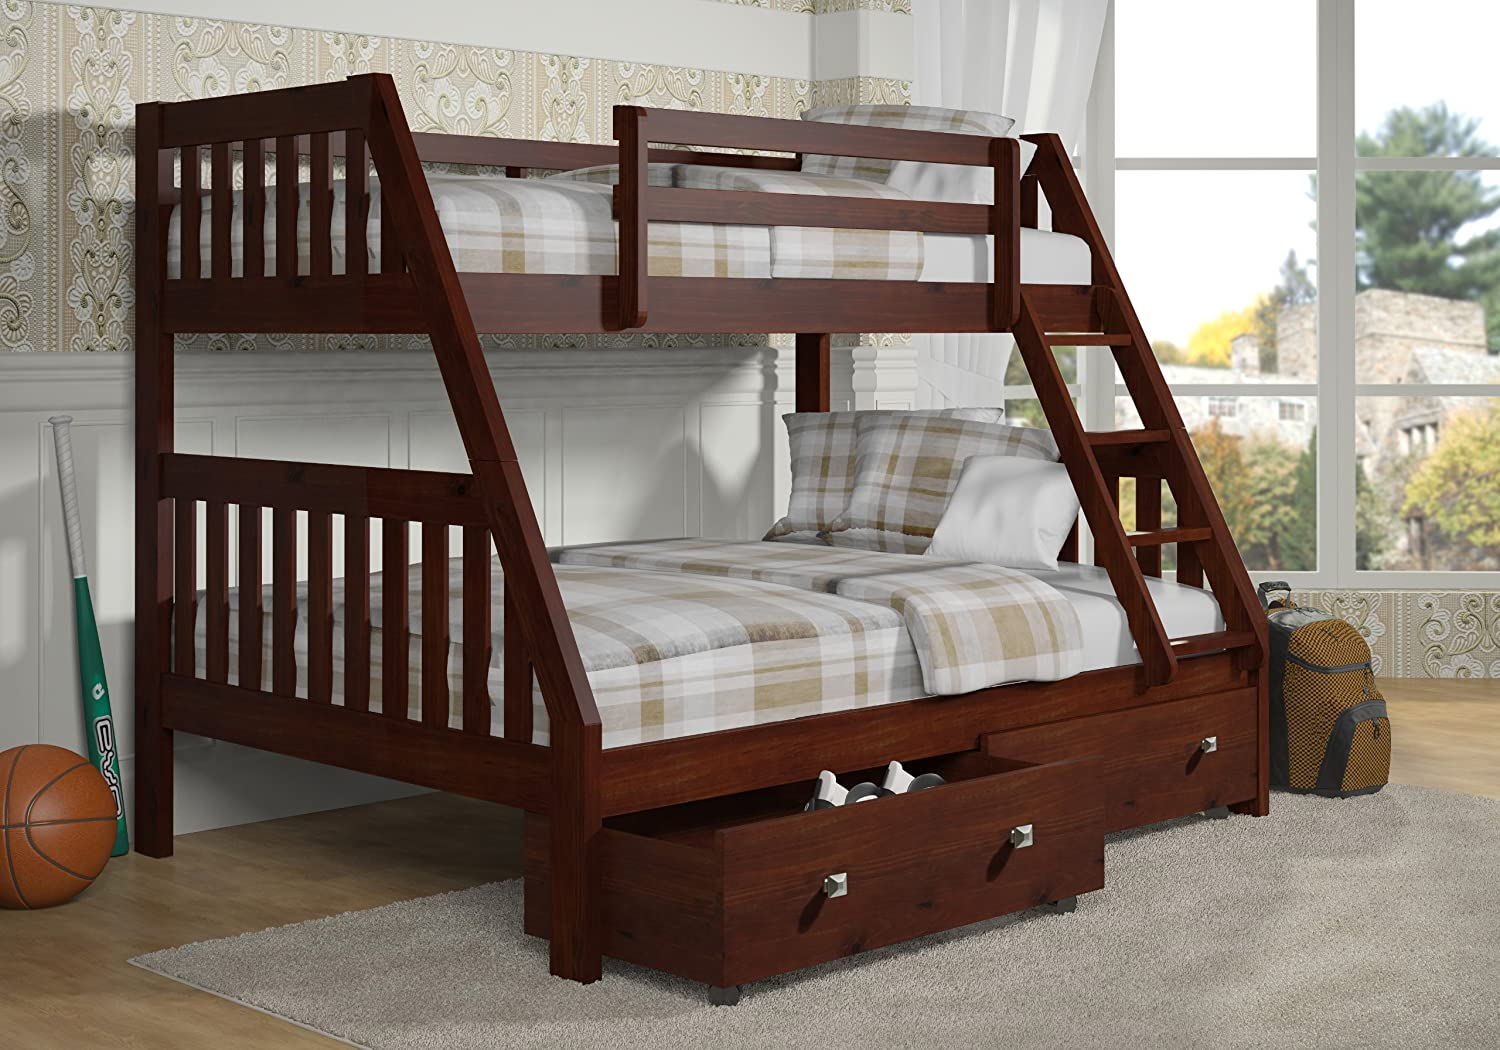 Com Bunk Bed Twin Over Full Mission Style Dark Cappuccino Finish Includes Drawers Kitchen Dining